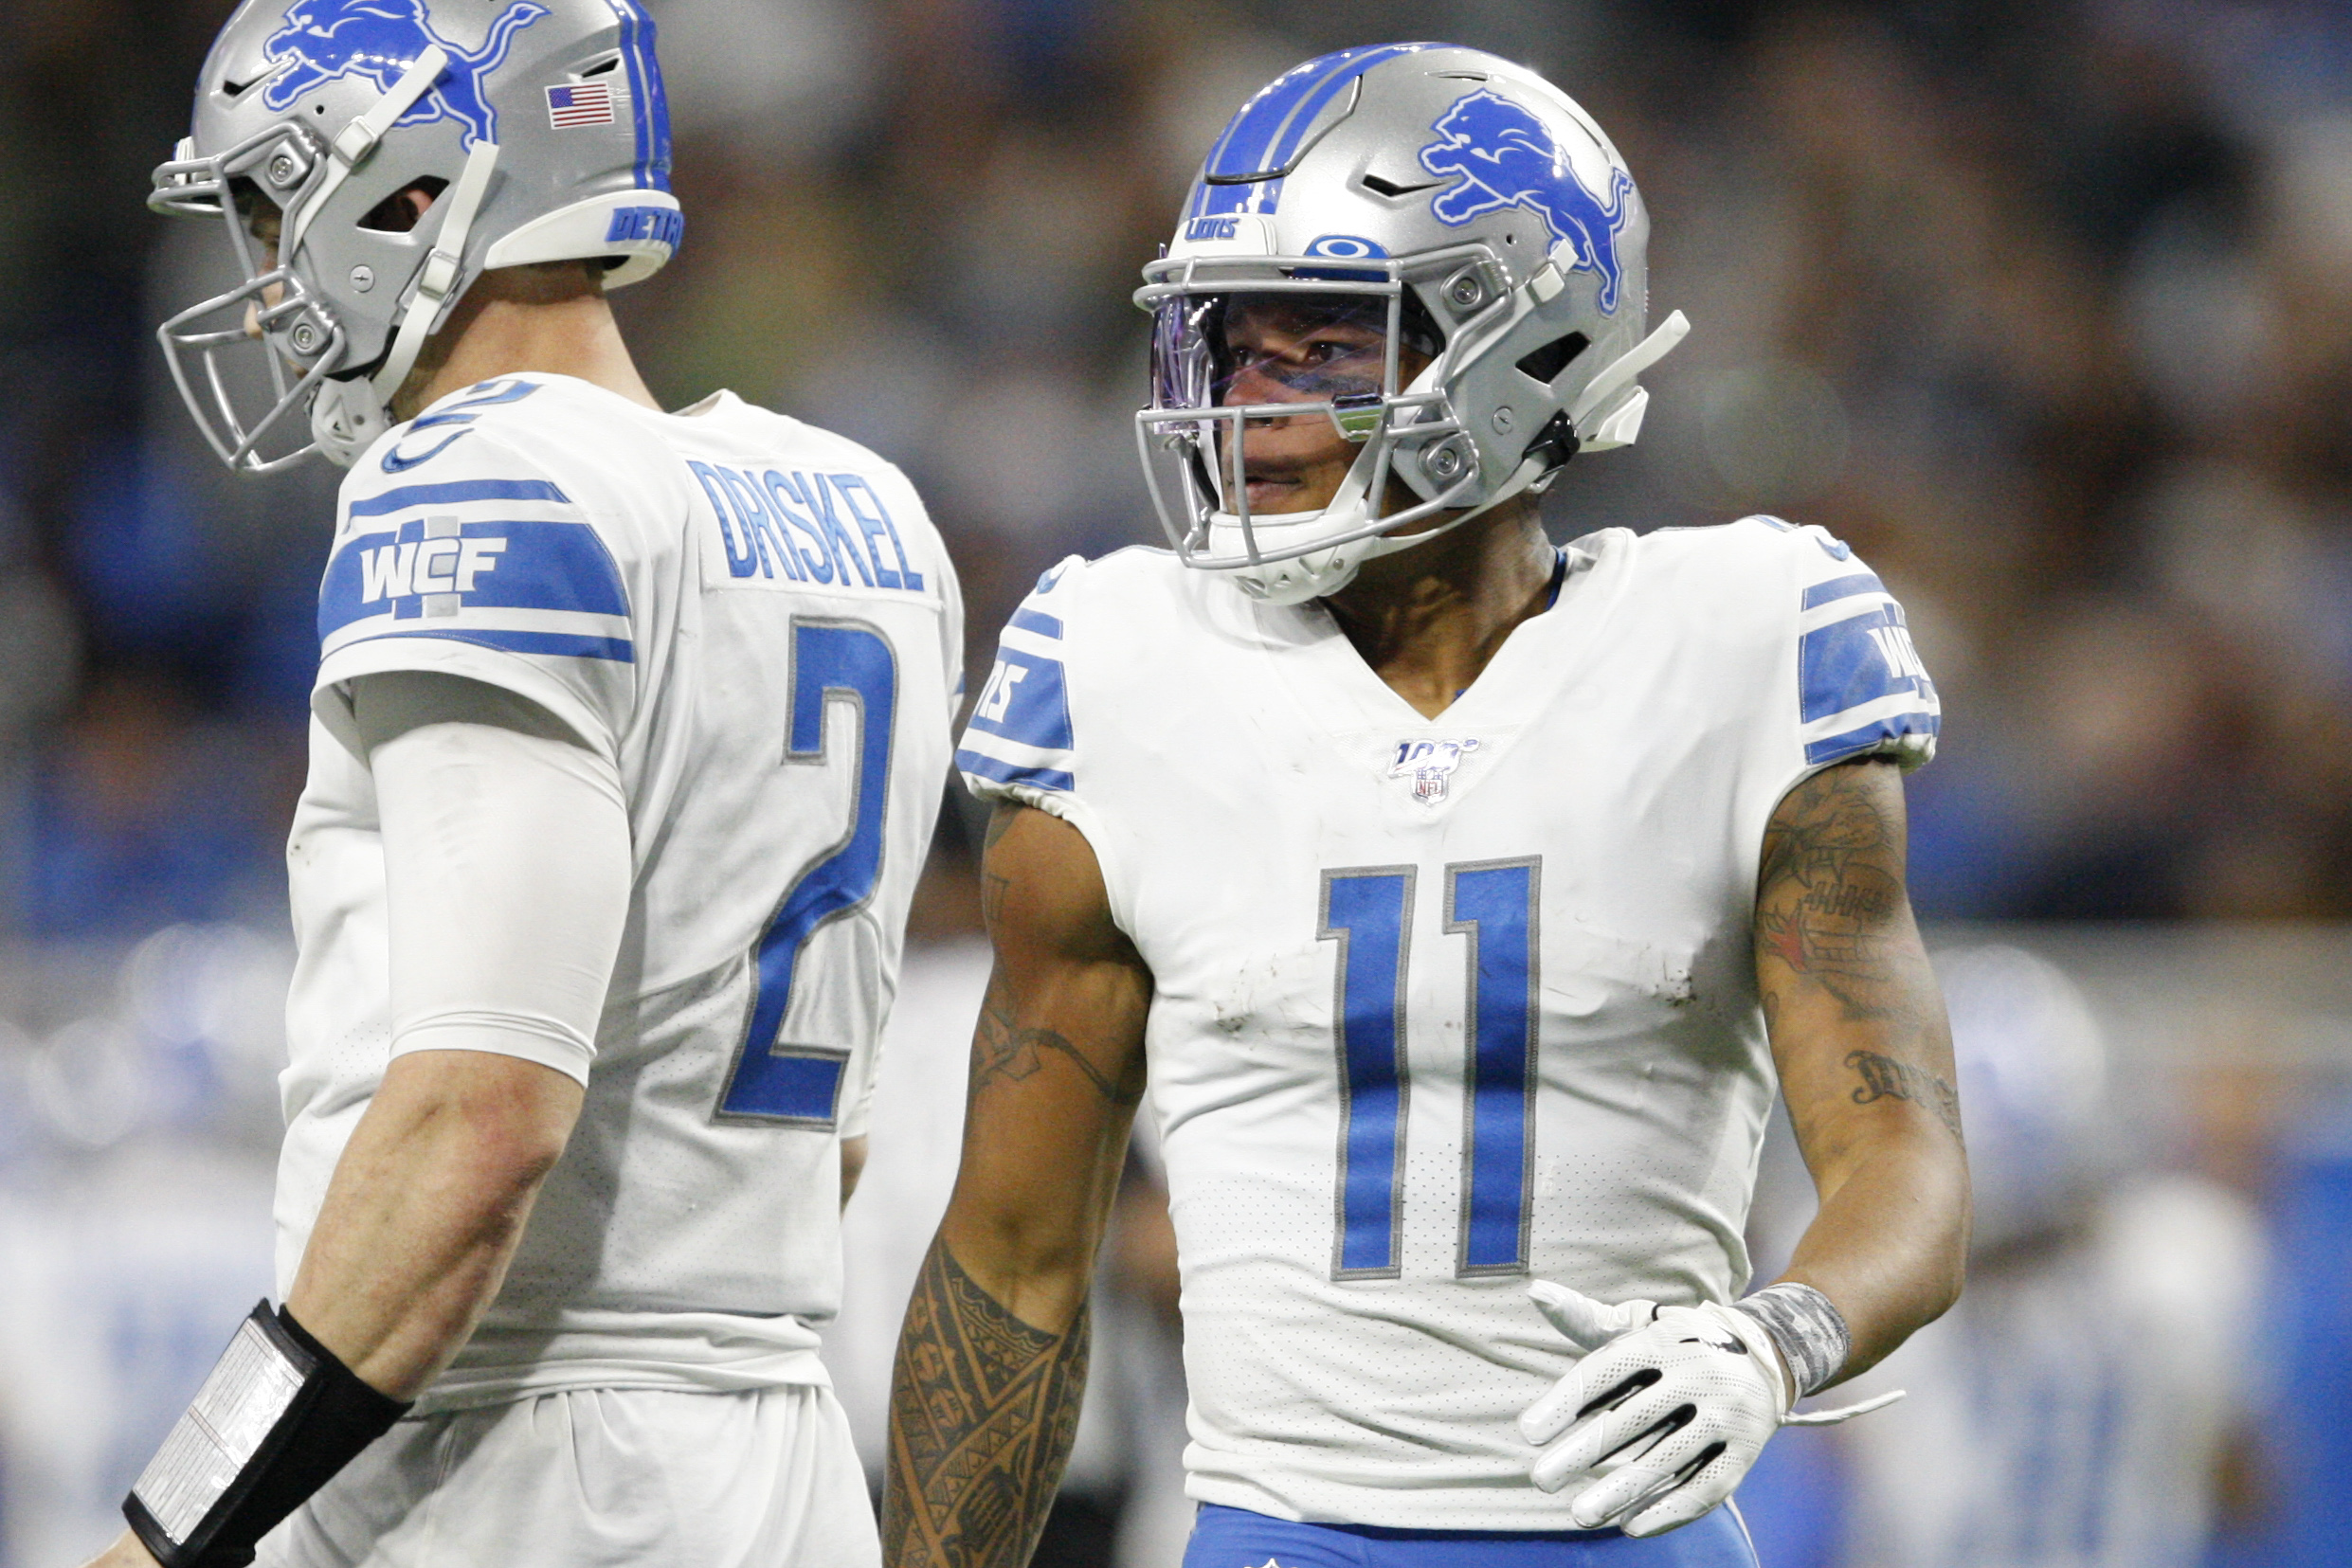 Detroit Lions wide receiver Marvin Jones walks behind quarterback Jeff Driskel before a play during the fourth quarter against the Dallas Cowboys at Ford Field.